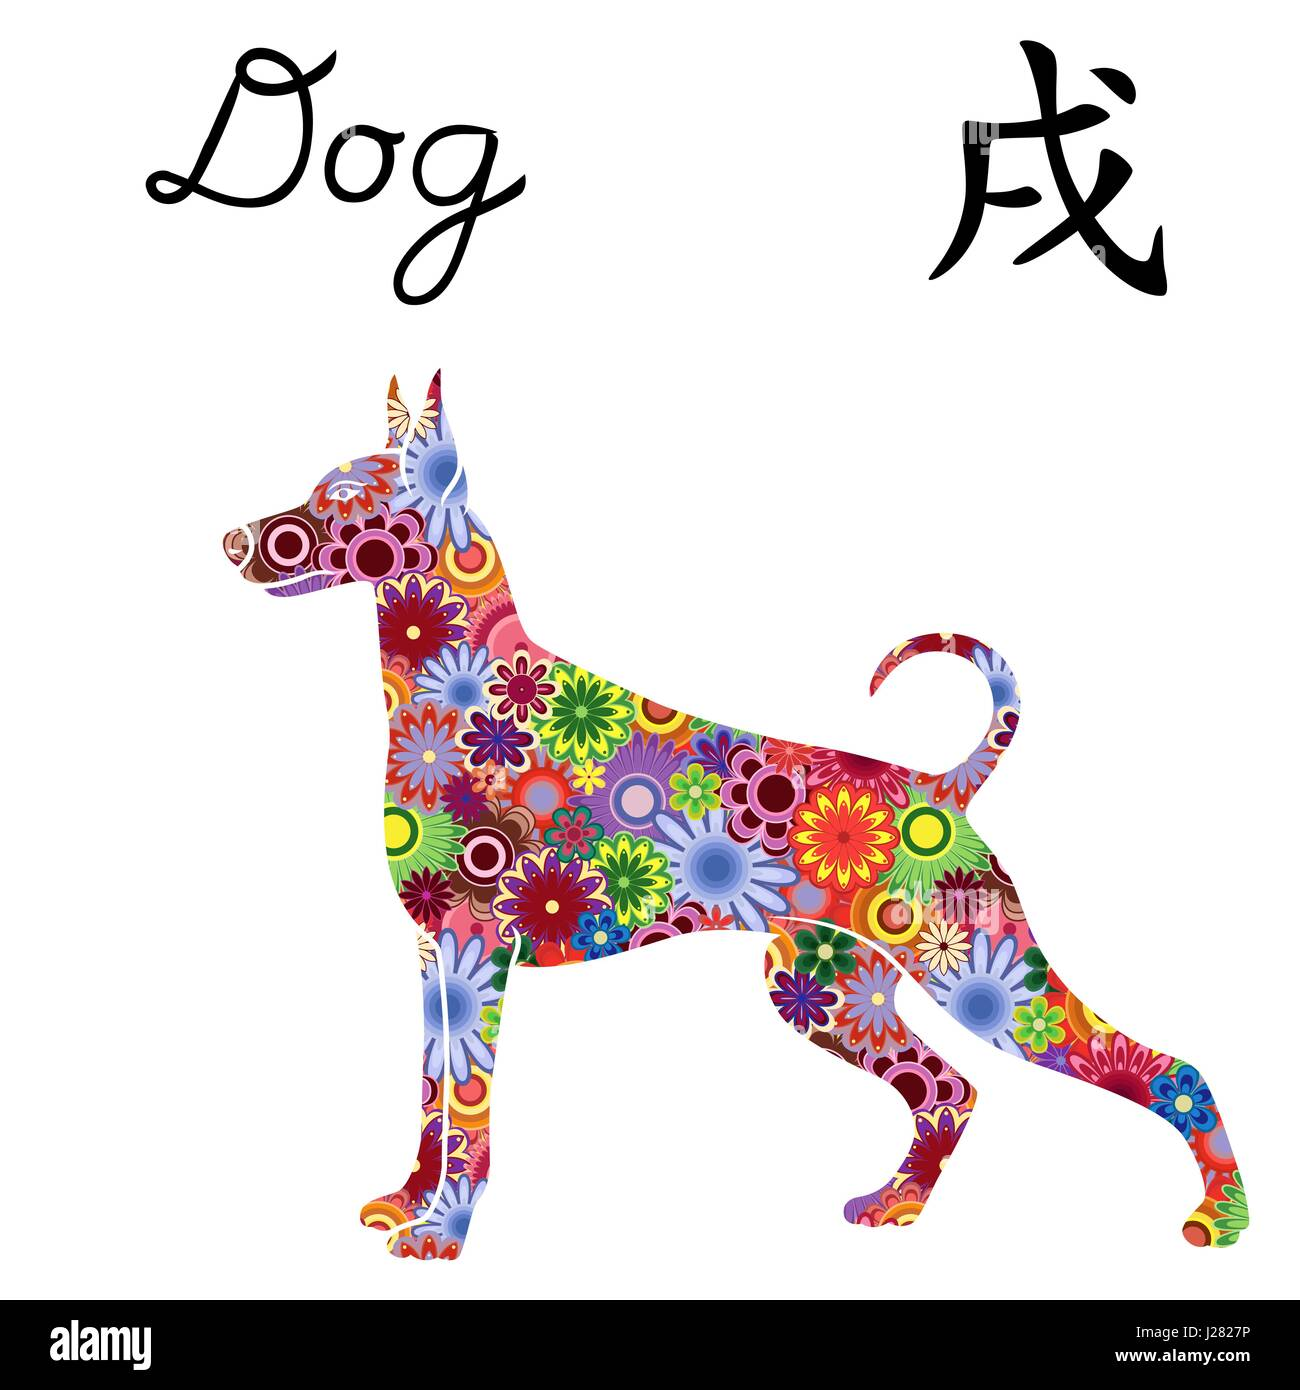 Chinese Zodiac Sign Dog Symbol Of New Year On The Eastern Calendar Stock Vector Image Art Alamy